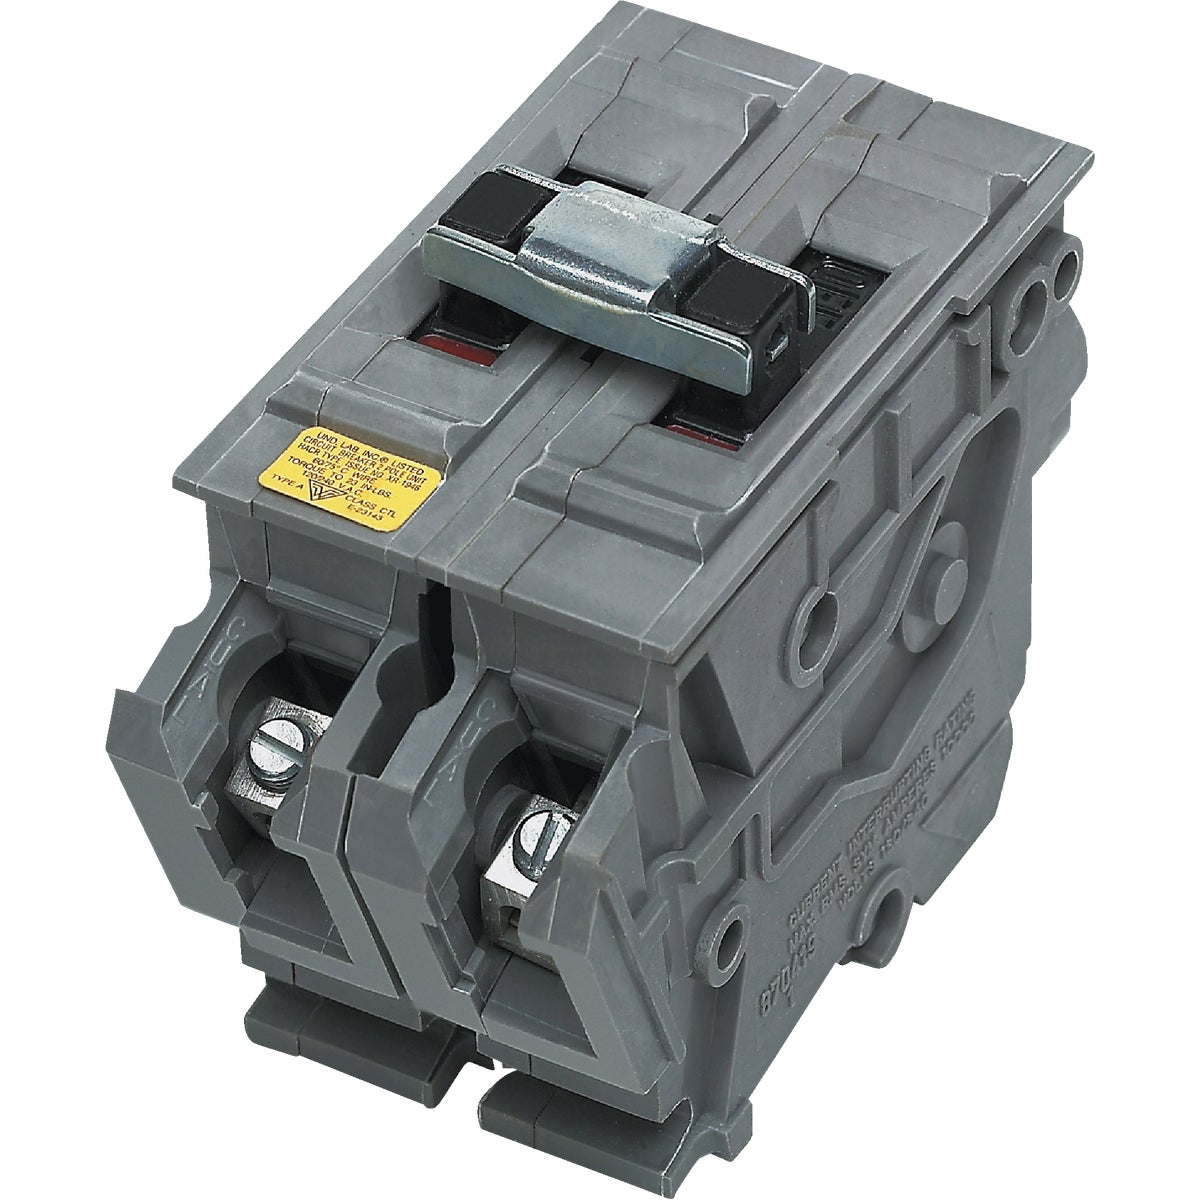 40A 2P CIRCUIT BREAKER - WA240 by Connecticut Electric